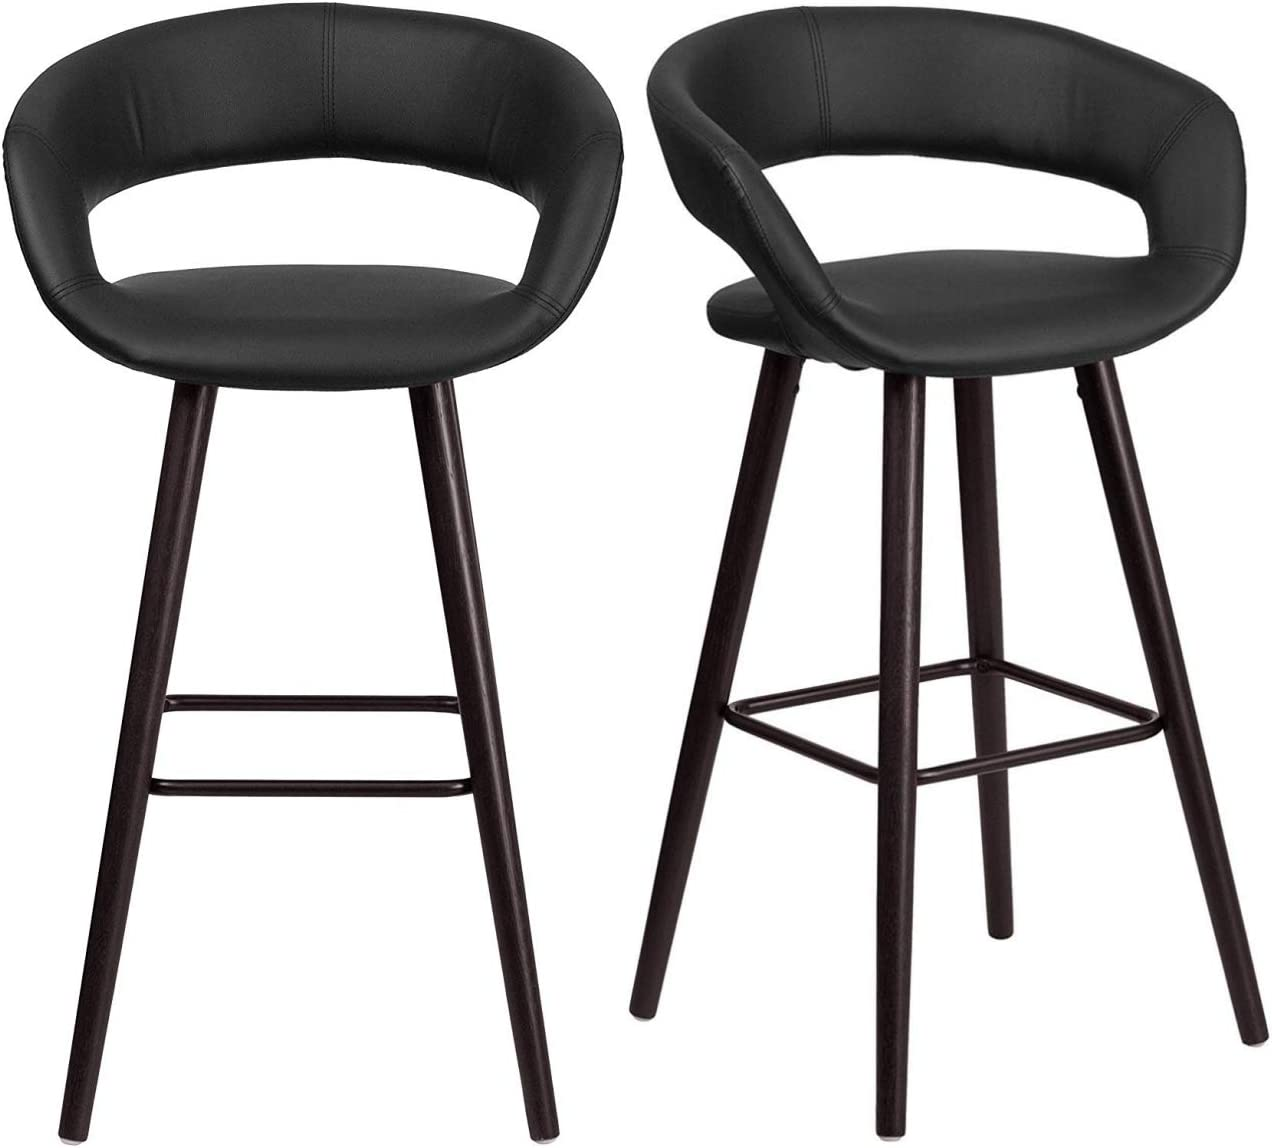 """KLS14 Set of 2 Contemporary Rounded Low Back Design 29.5"""" High Bar Stools Commercial Dining Chairs Home Office Furniture, Black Vinyl/2365"""